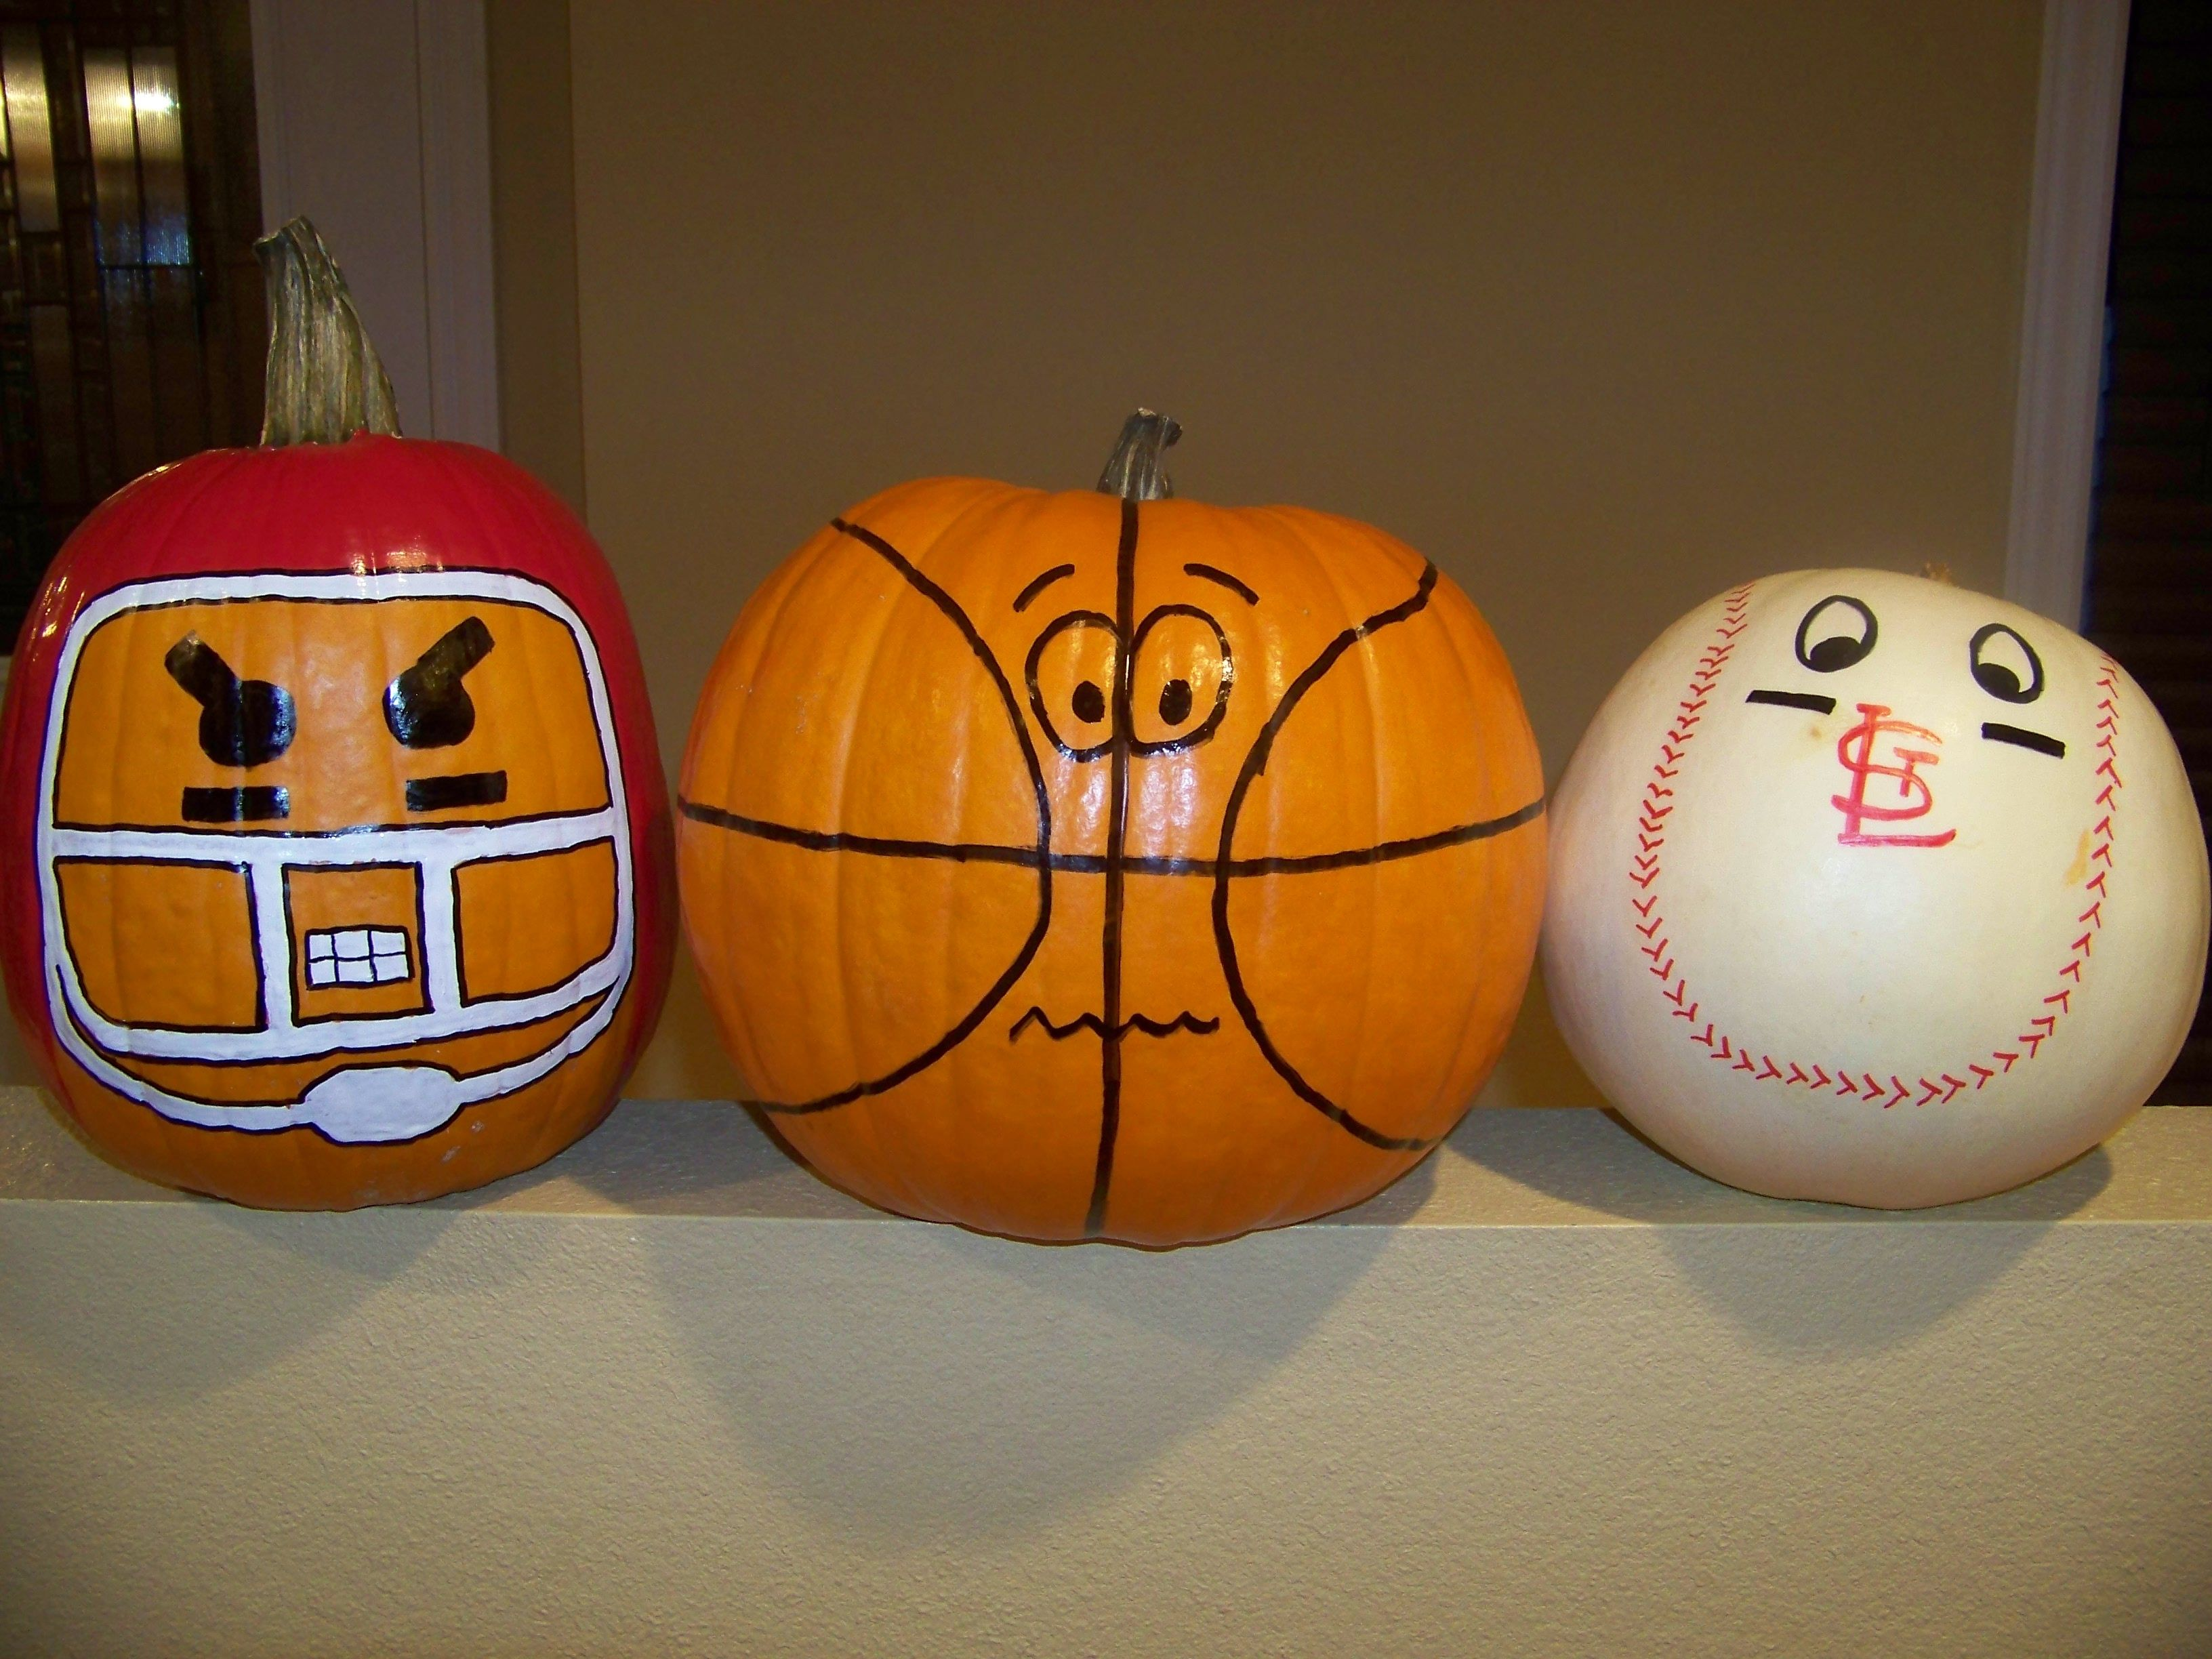 sports pumpkin - Halloween Decorations Pumpkins